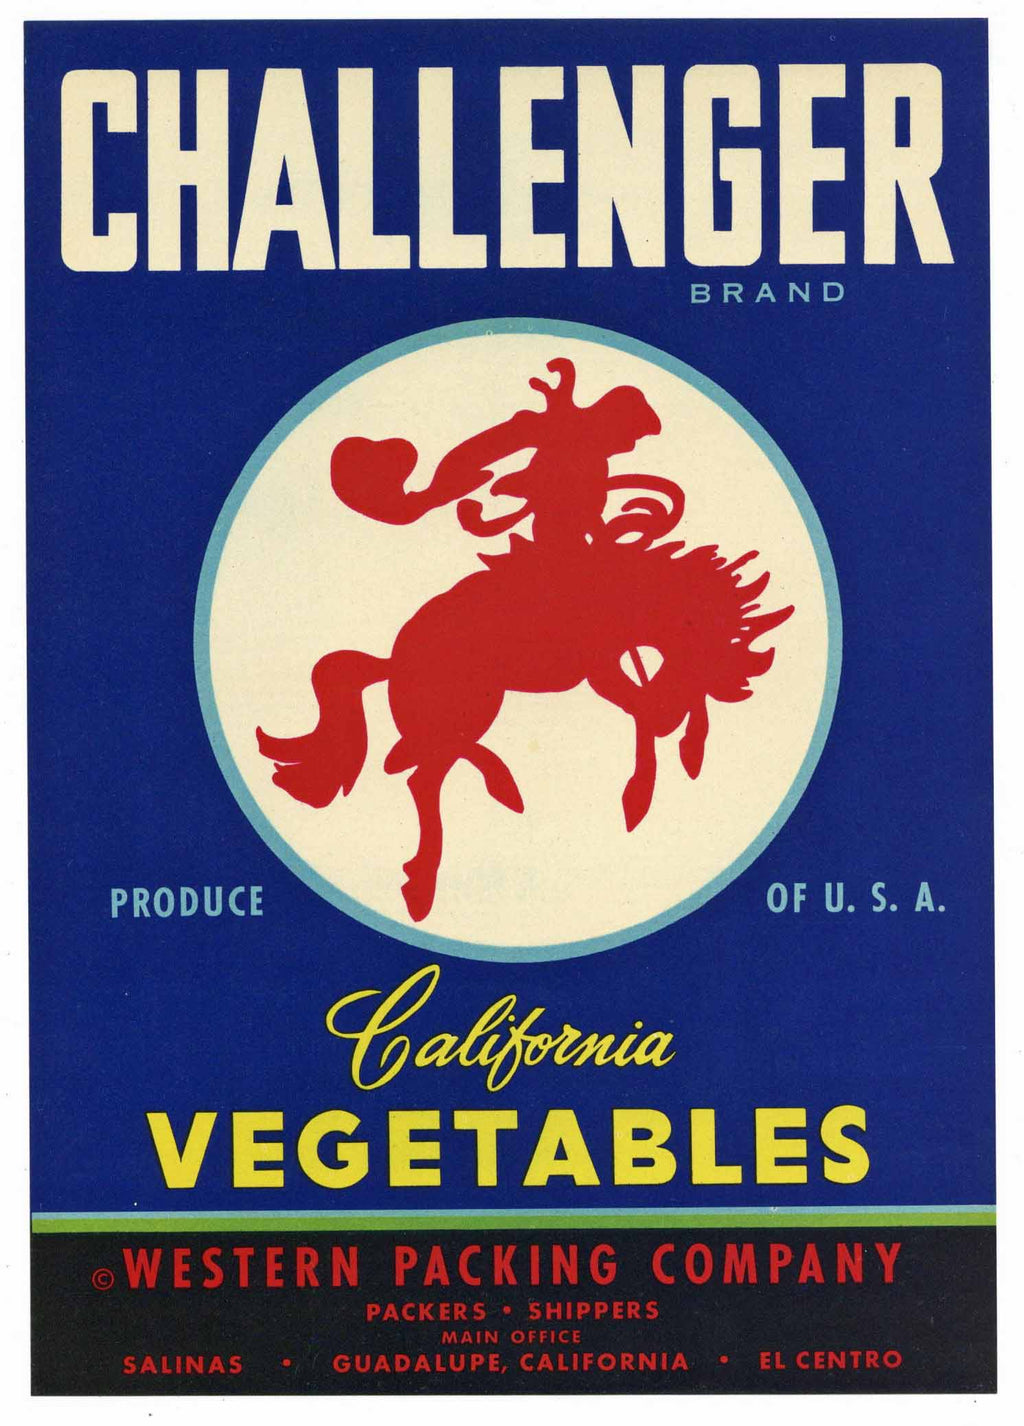 Challenger Brand Vintage Vegetable Crate Label